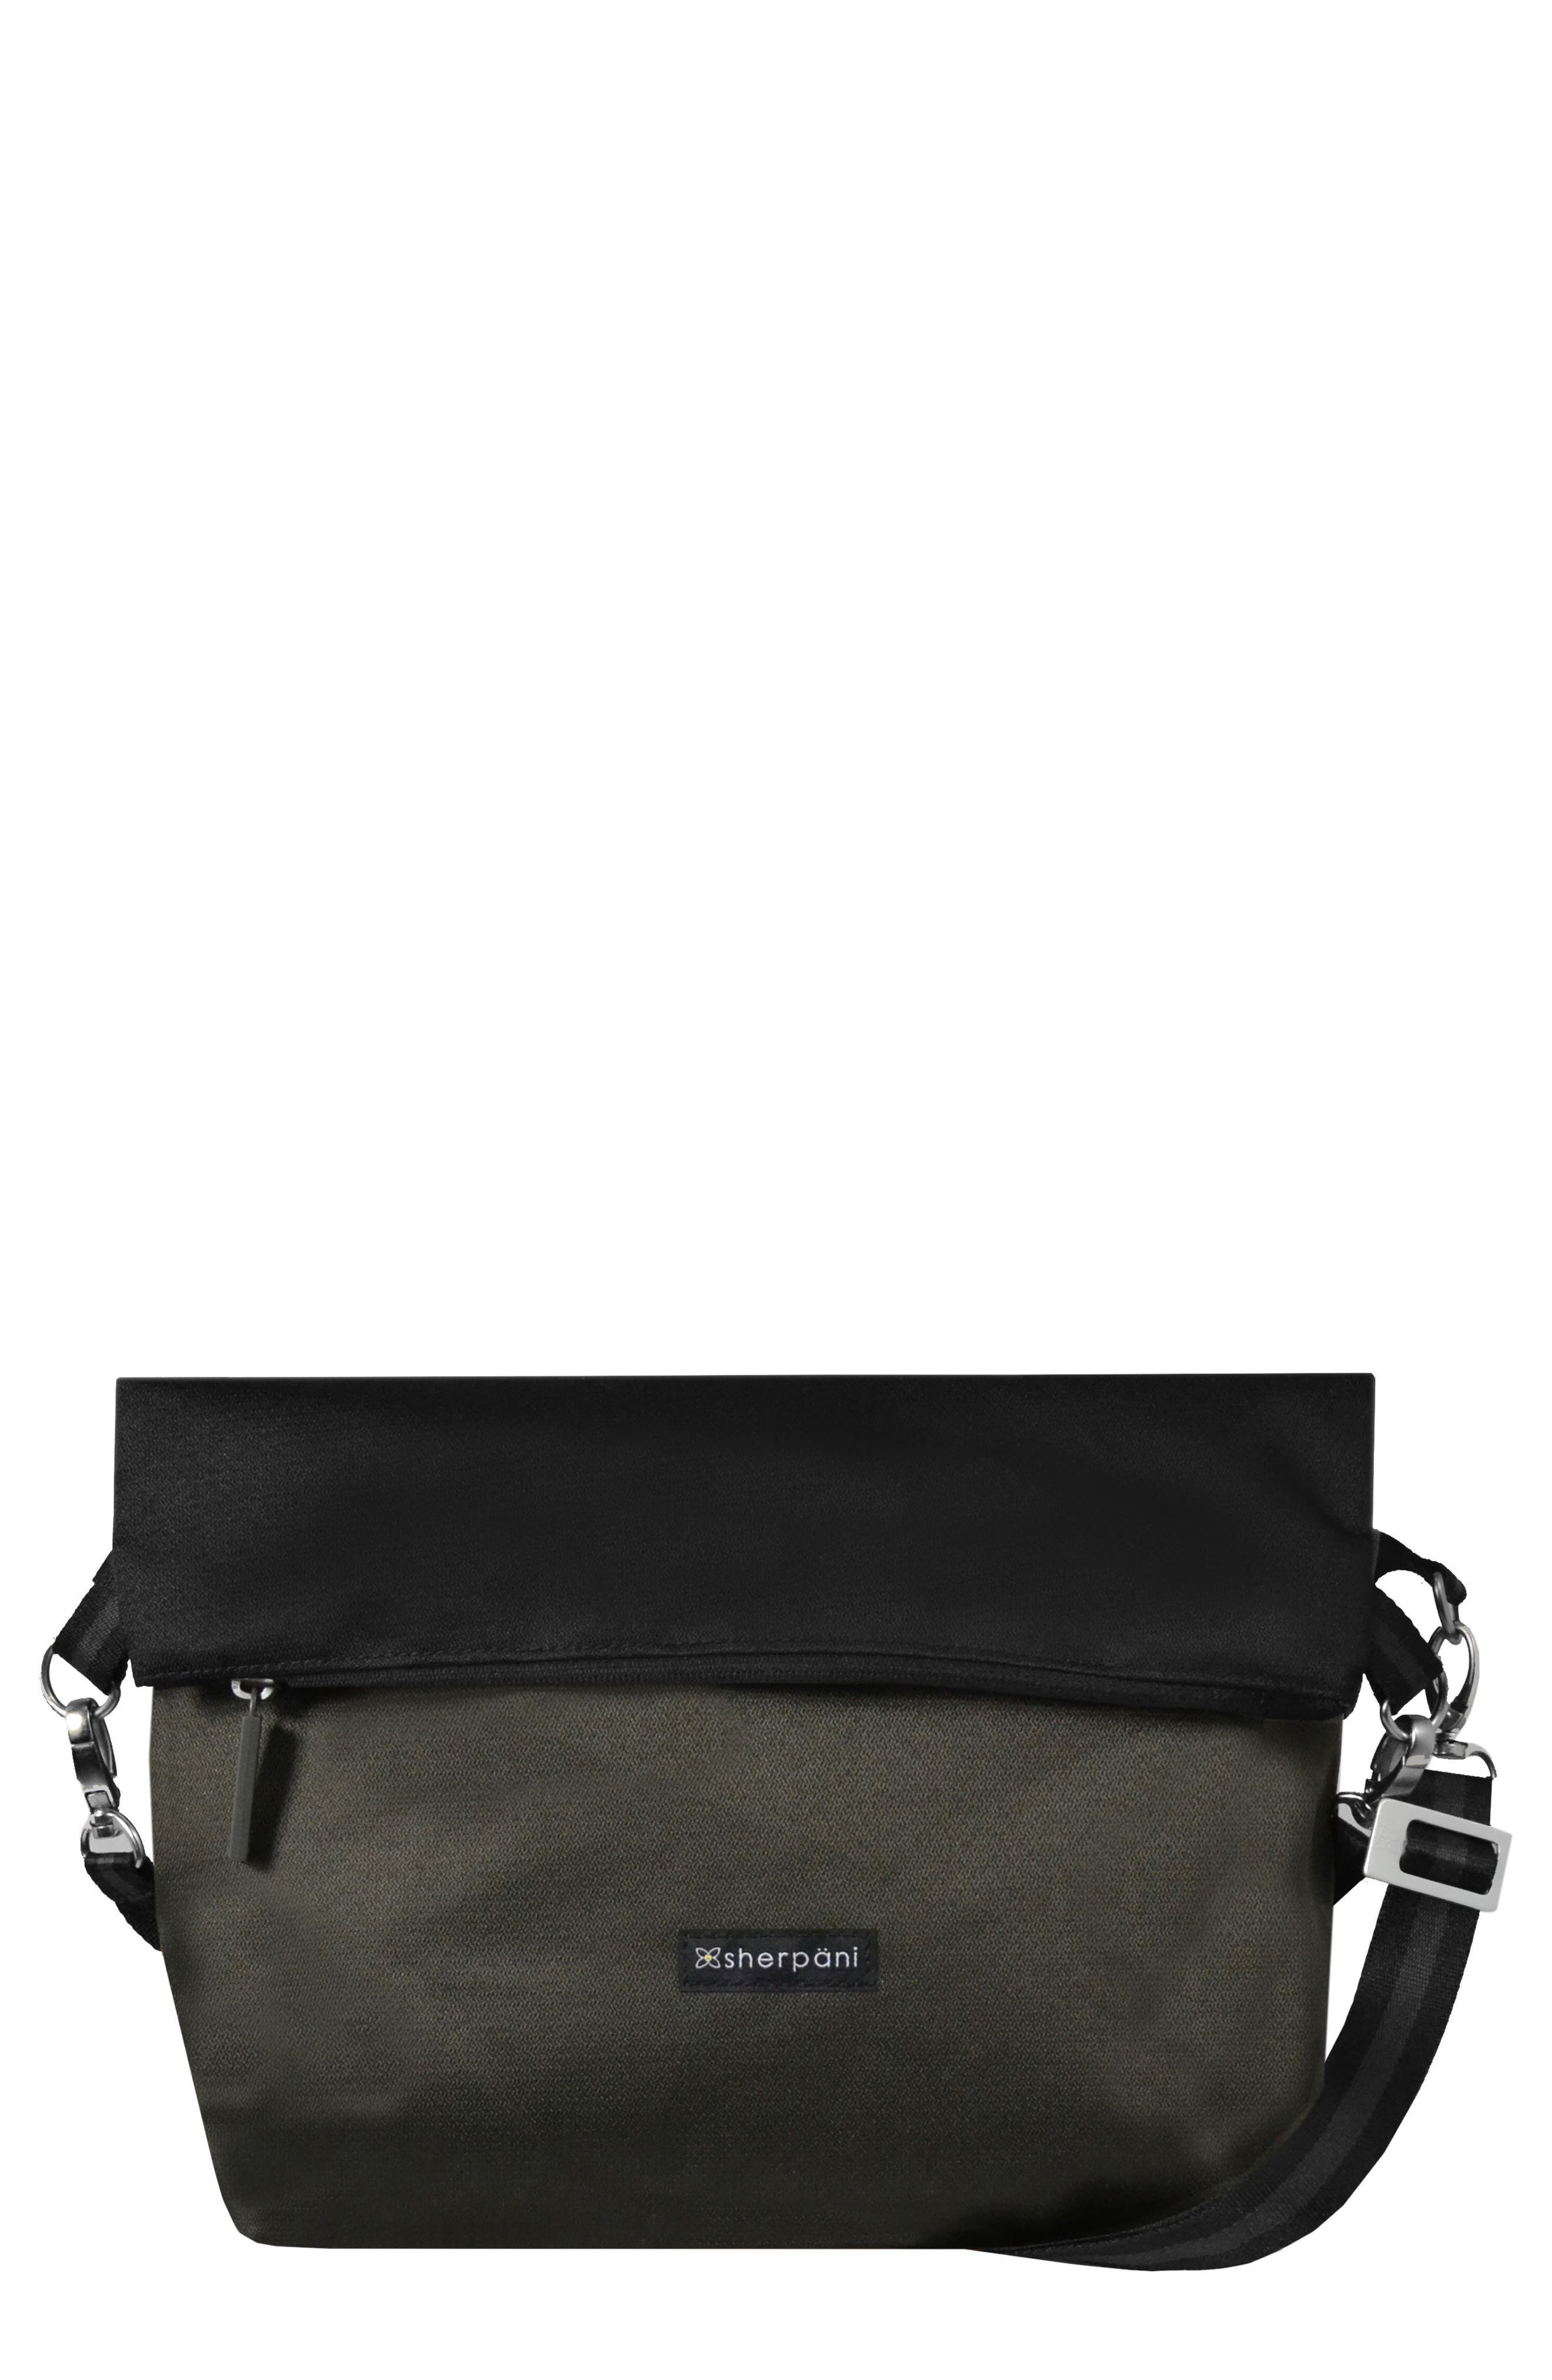 Sherpani Vale Reversible Crossbody Bag